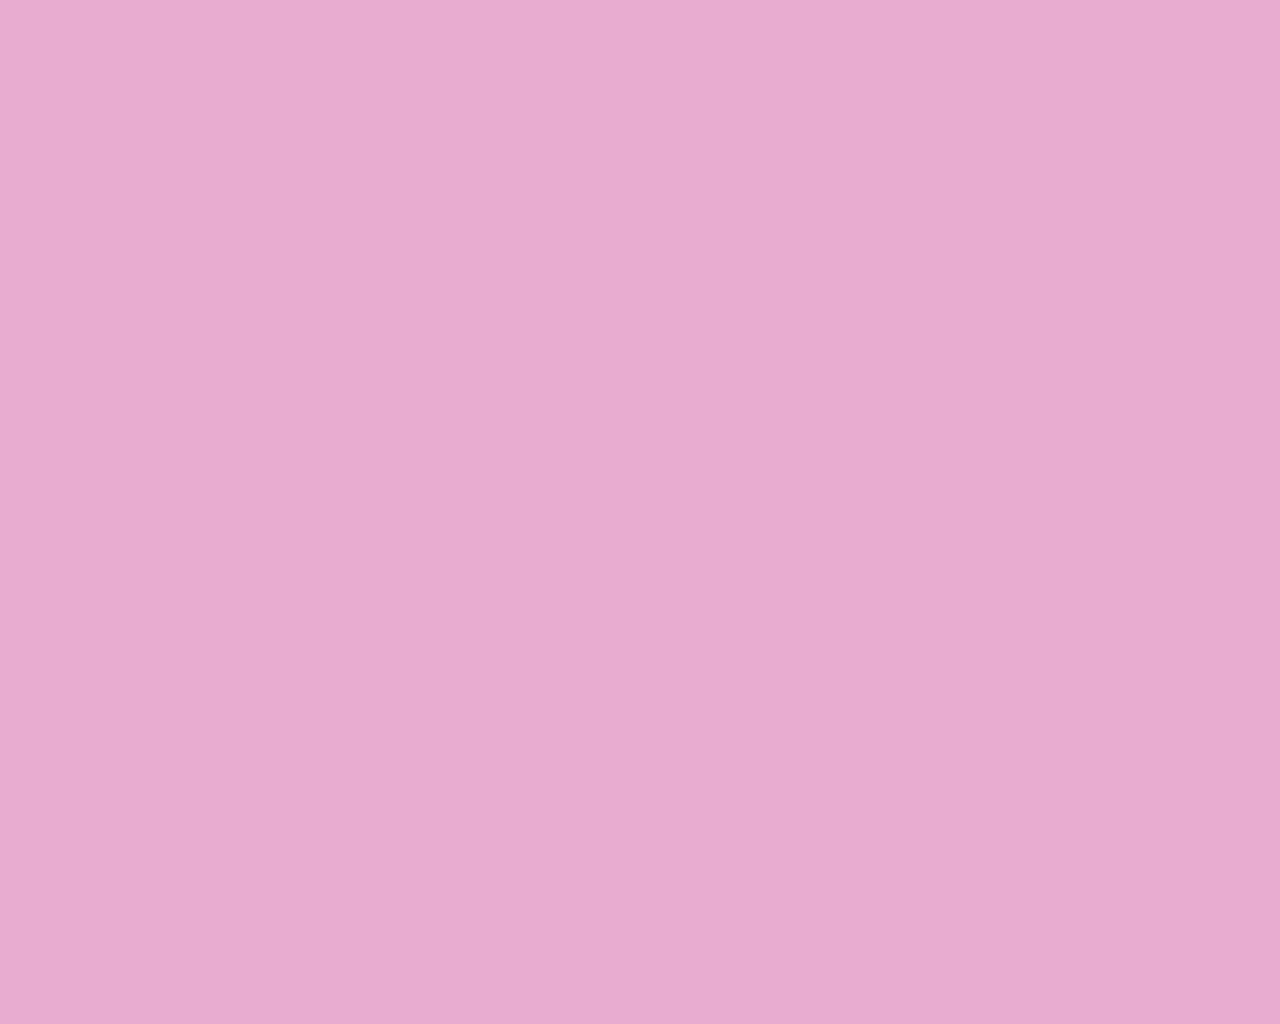 1280x1024 Pink Pearl Solid Color Background